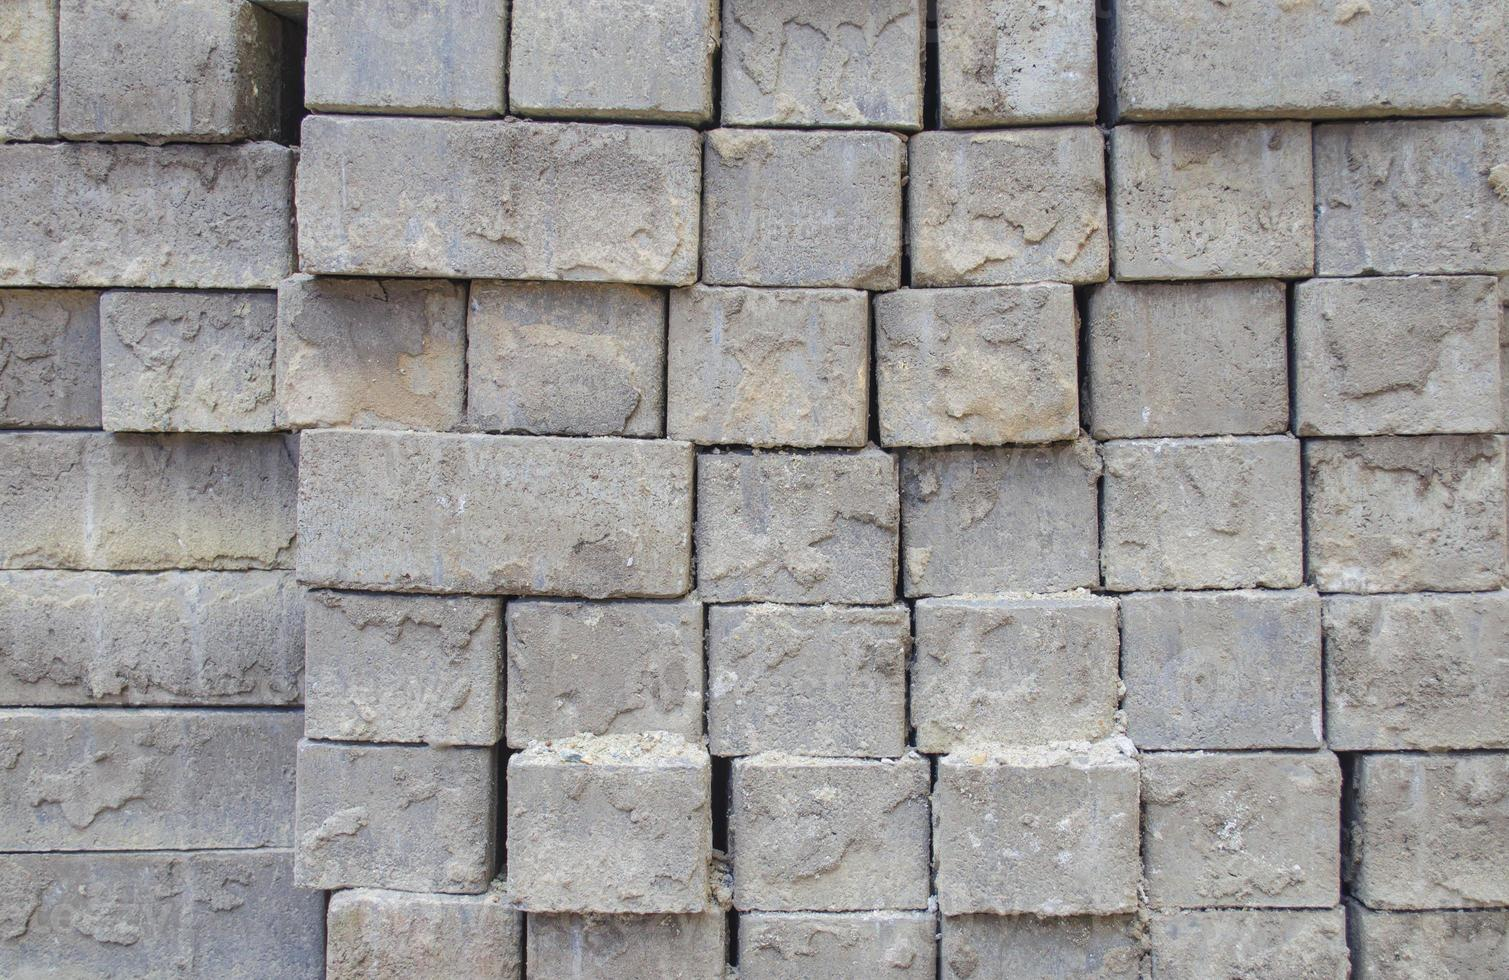 Grey bricks stacked in rows photo